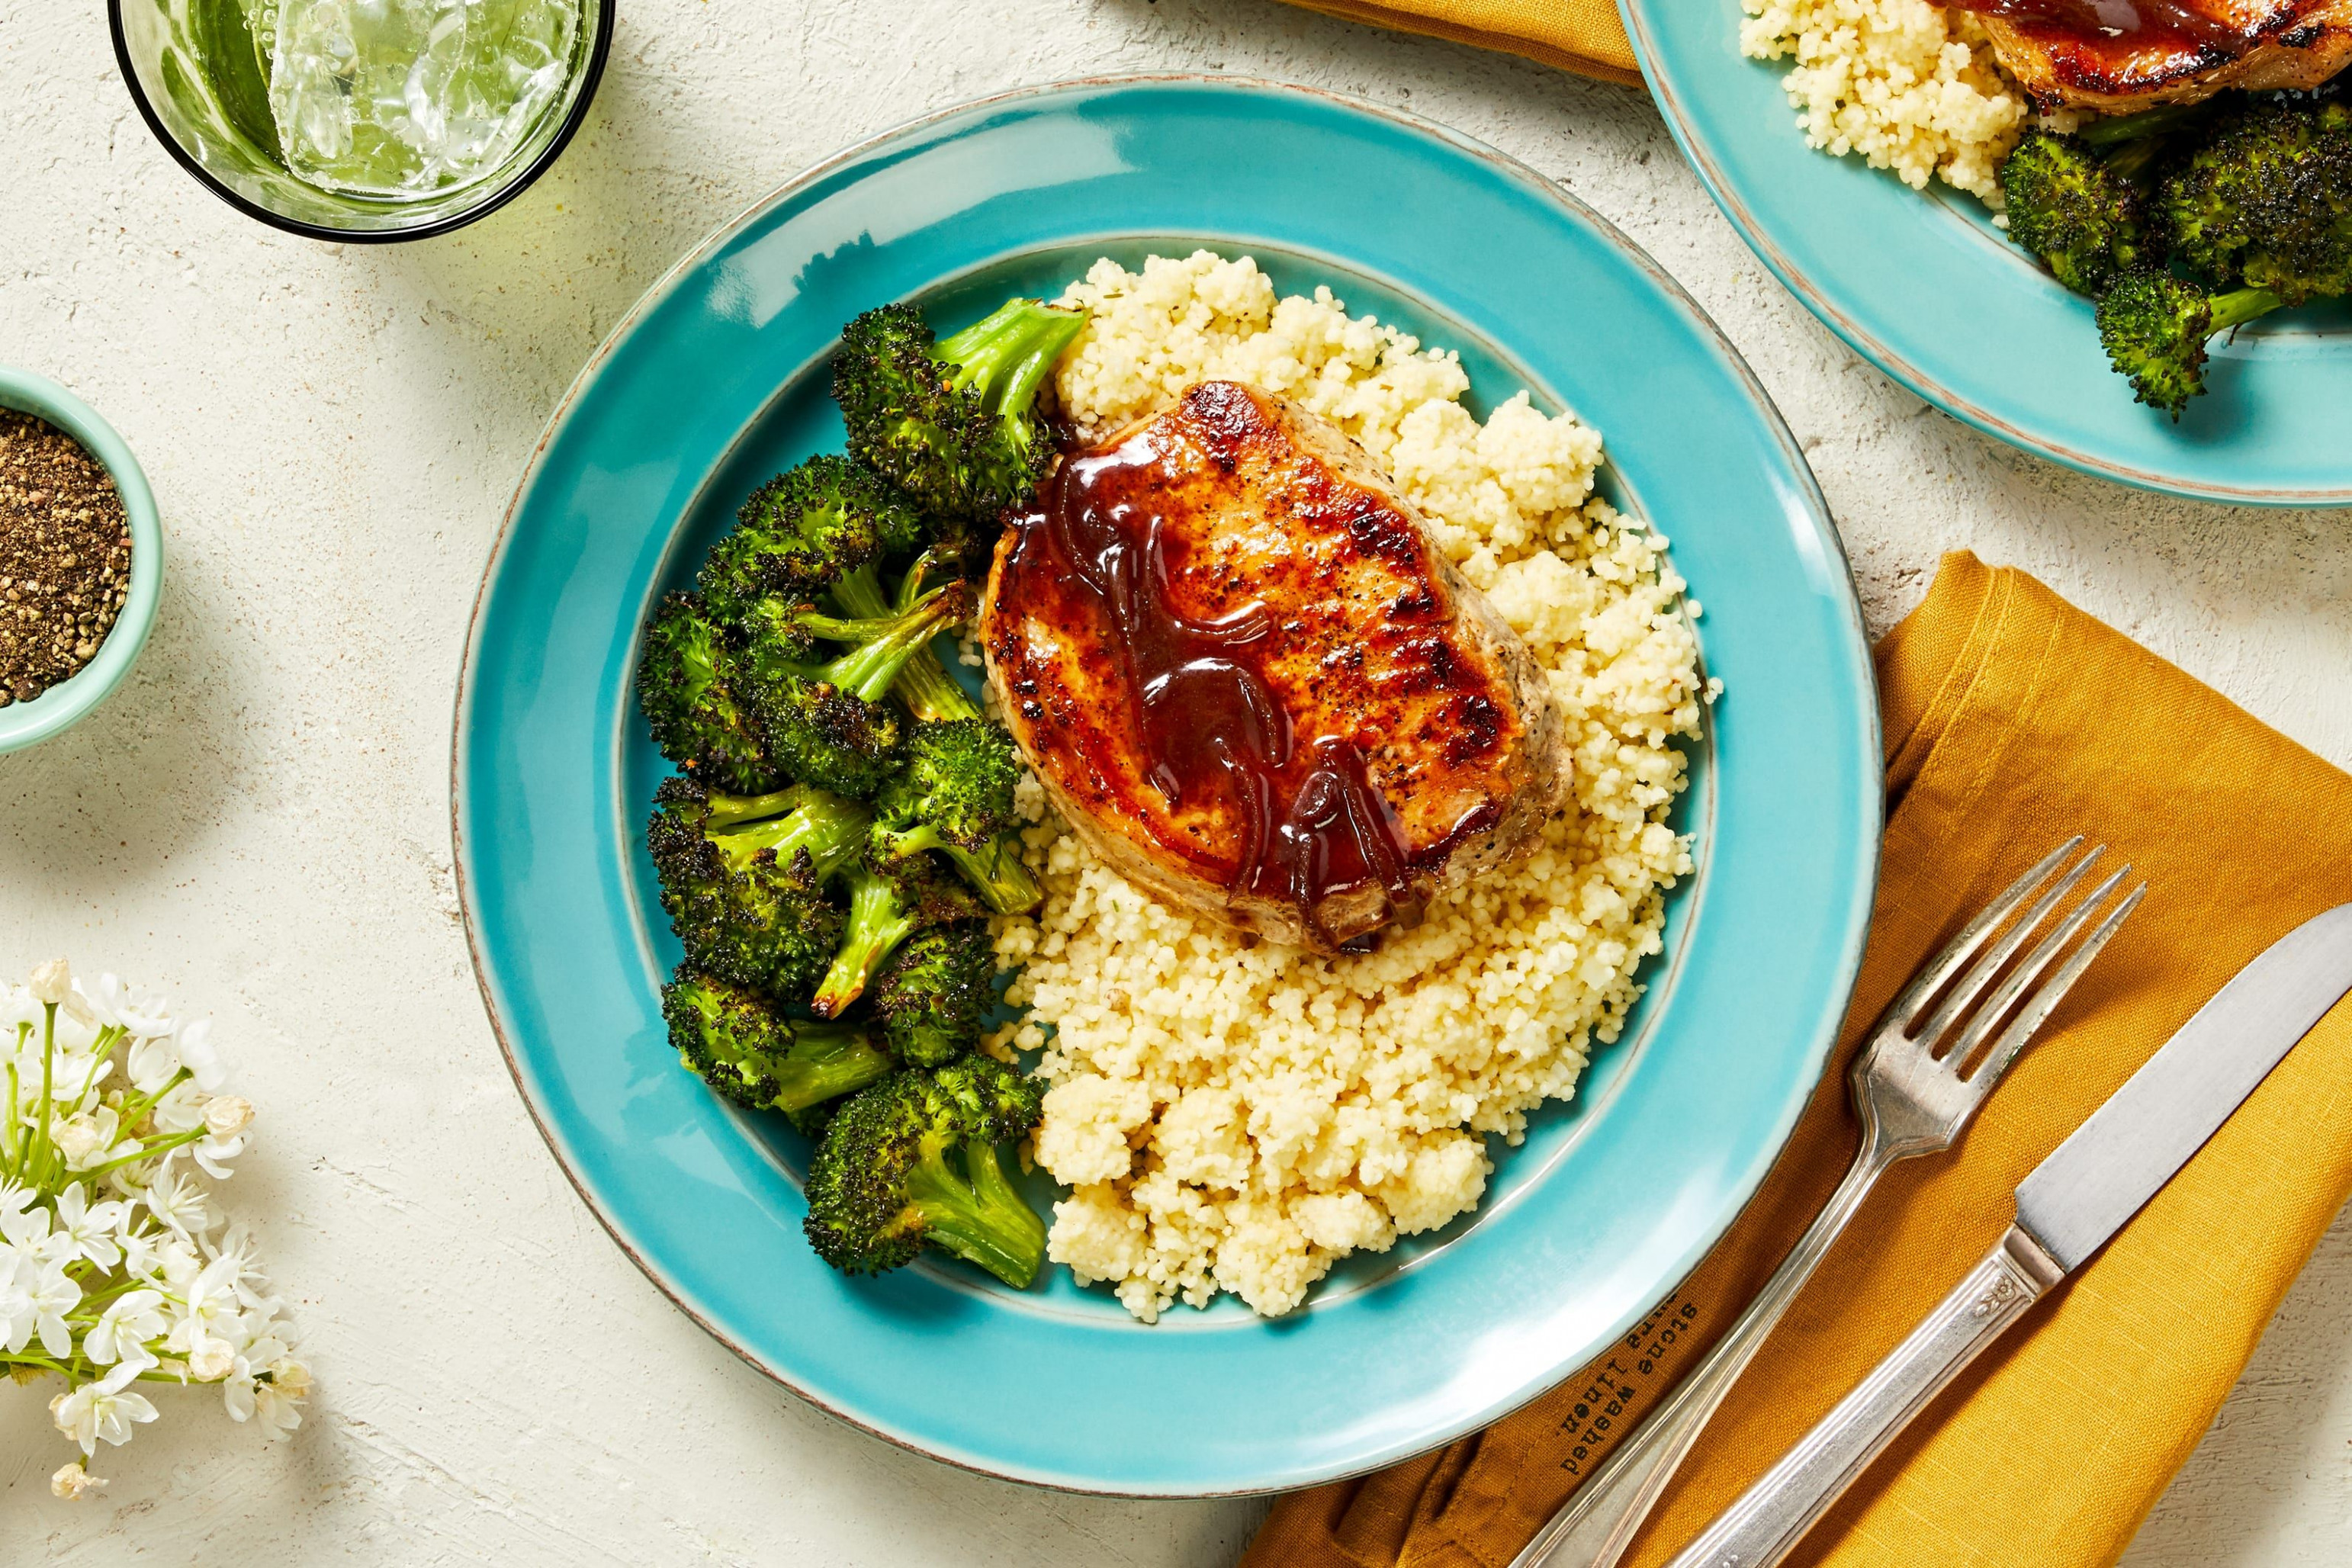 Cherry Balsamic Pork Chops with Garlic Herb Couscous and Roasted Broccoli